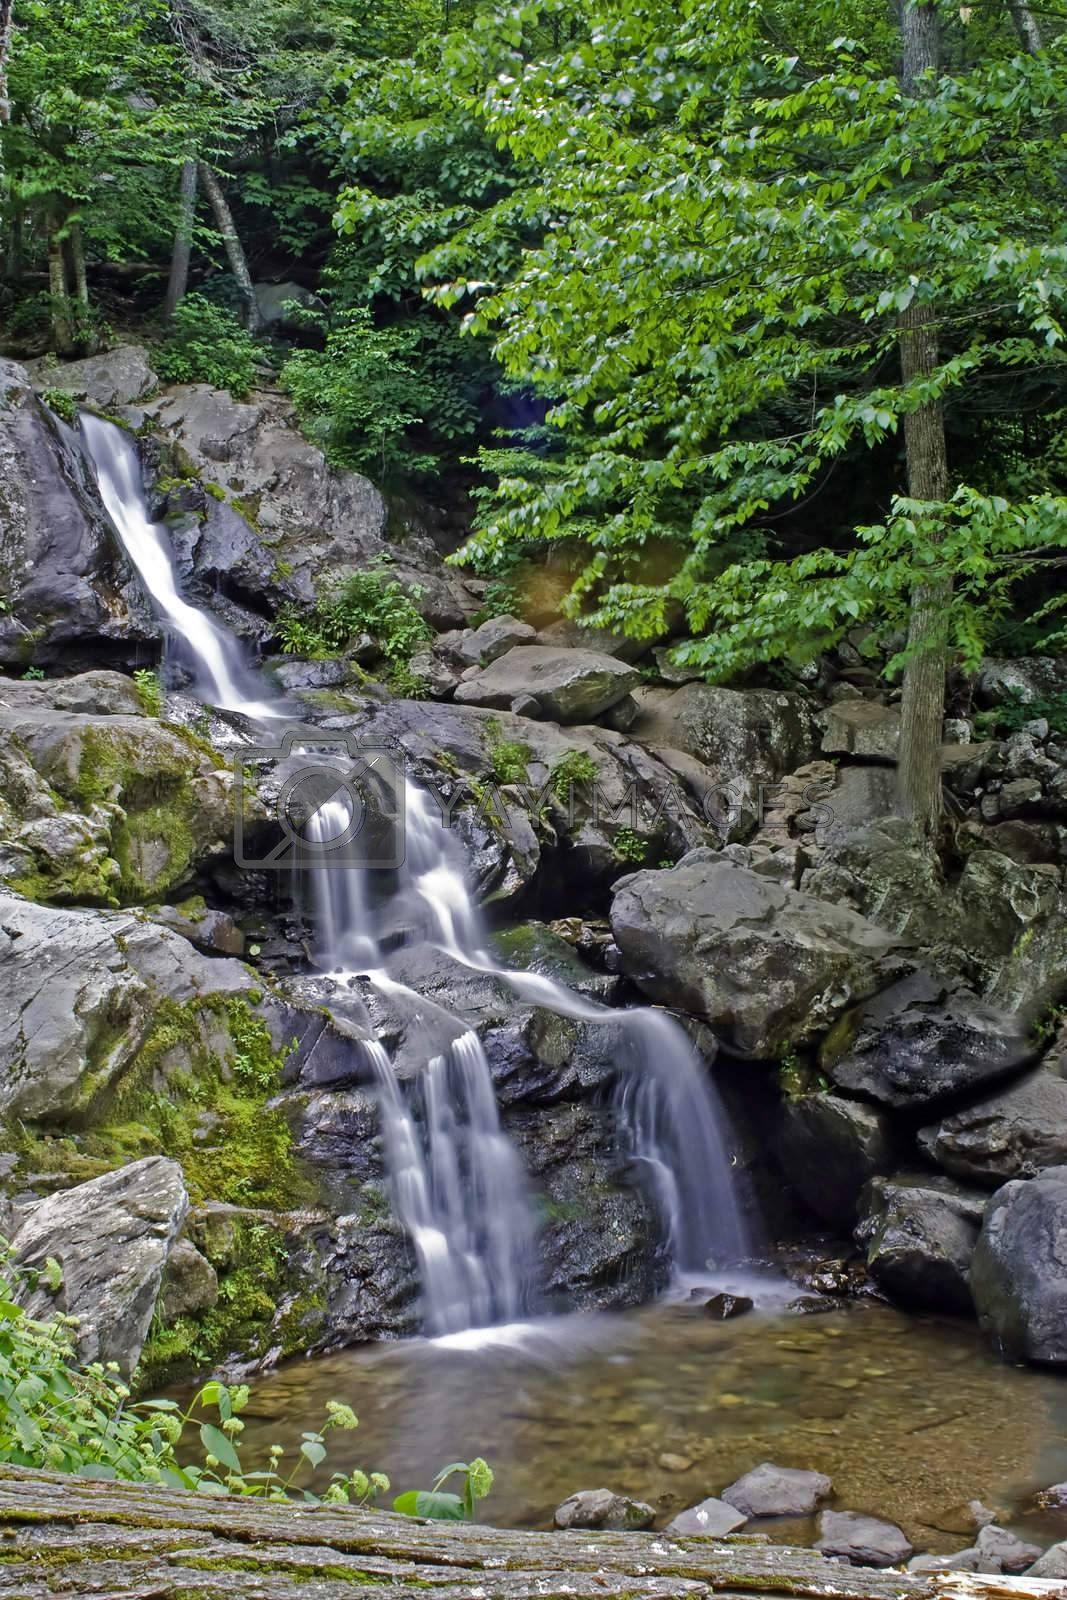 A layered waterfall with flowing water surrounded with vegetation